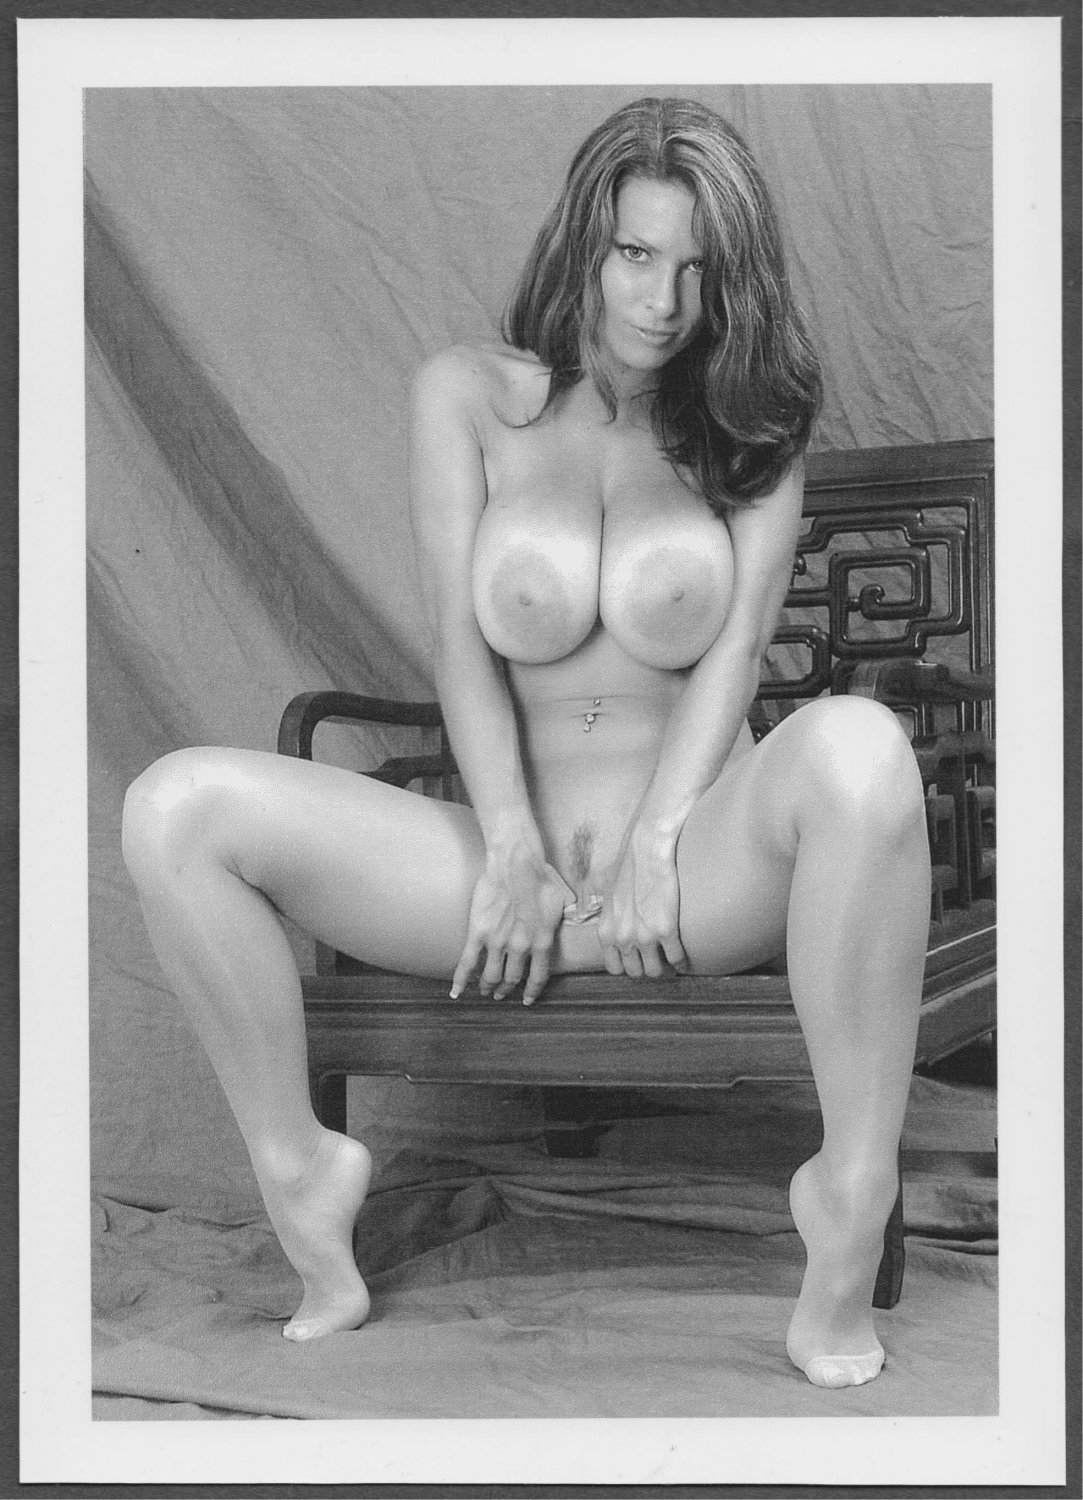 RINA DONALD ALL NUDE HUGE HEAVY HANGING BOOBS BARE PUSSY NEW REPRINT 5 X 7 #26